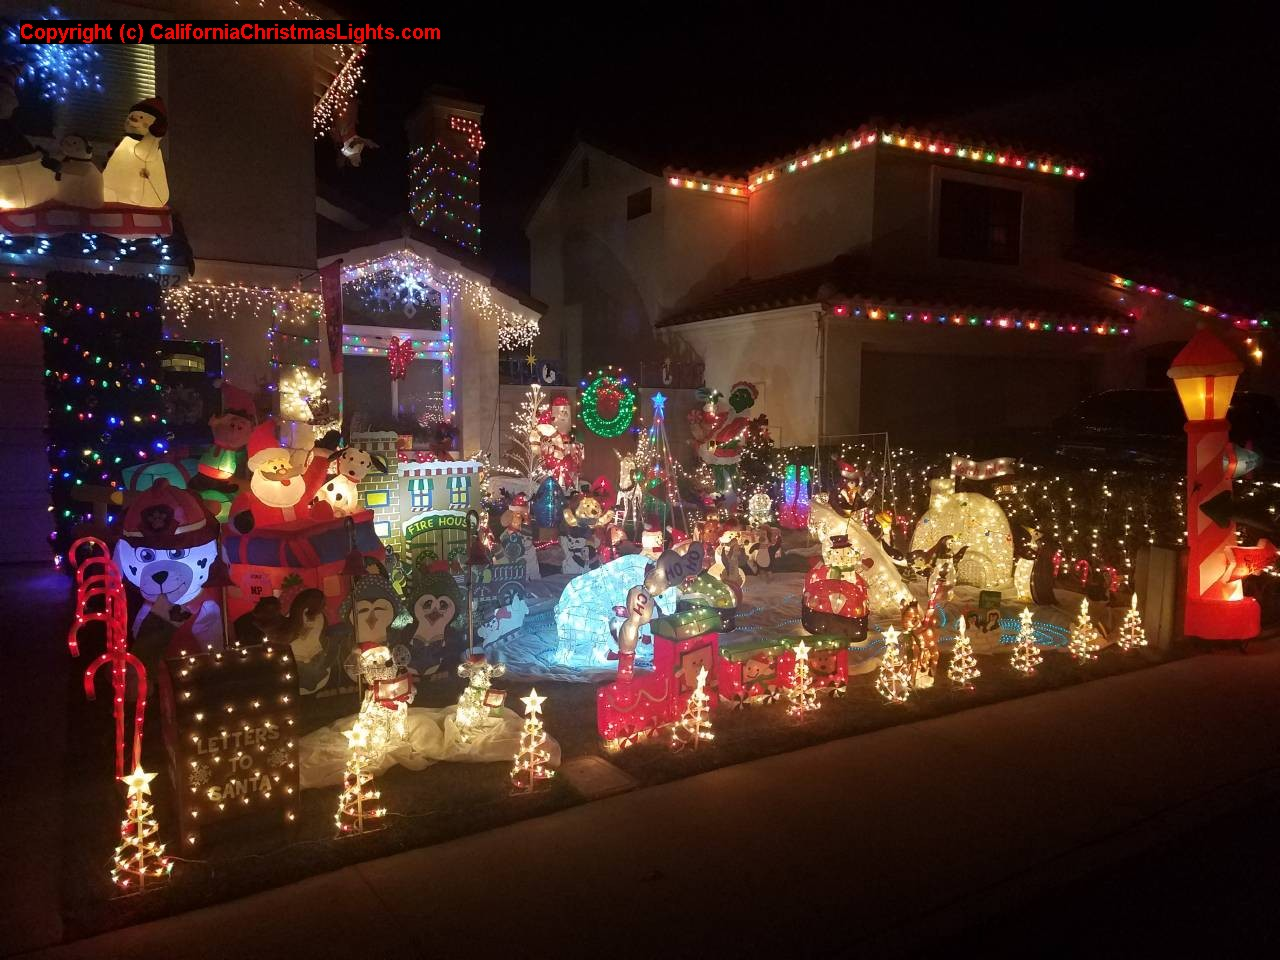 Lake Forest Christmas Lights 2020 Best Christmas Lights and Holiday Displays in Lake Forest, Orange